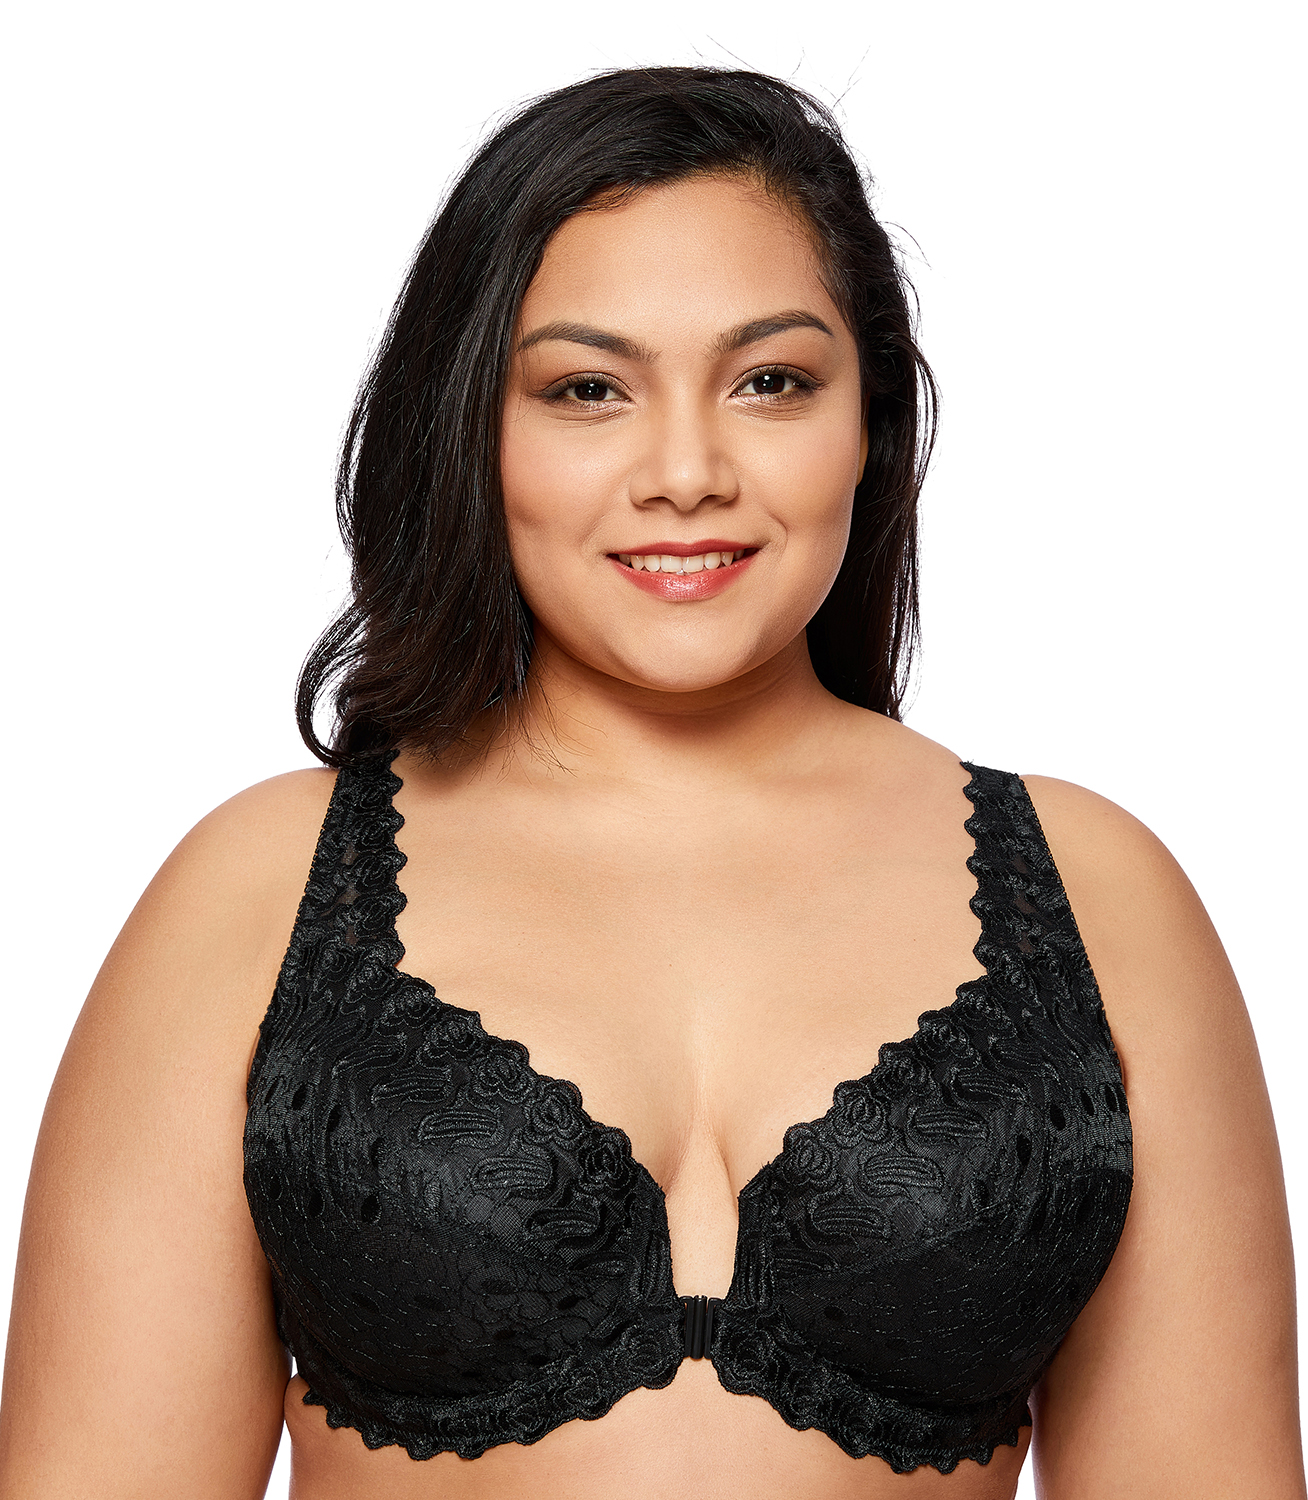 b2db243f3faba Women s Plus Size Support Lace Front Close Unlined Embroidered Underwired  Bra-in Bras from Underwear   Sleepwears on Aliexpress.com